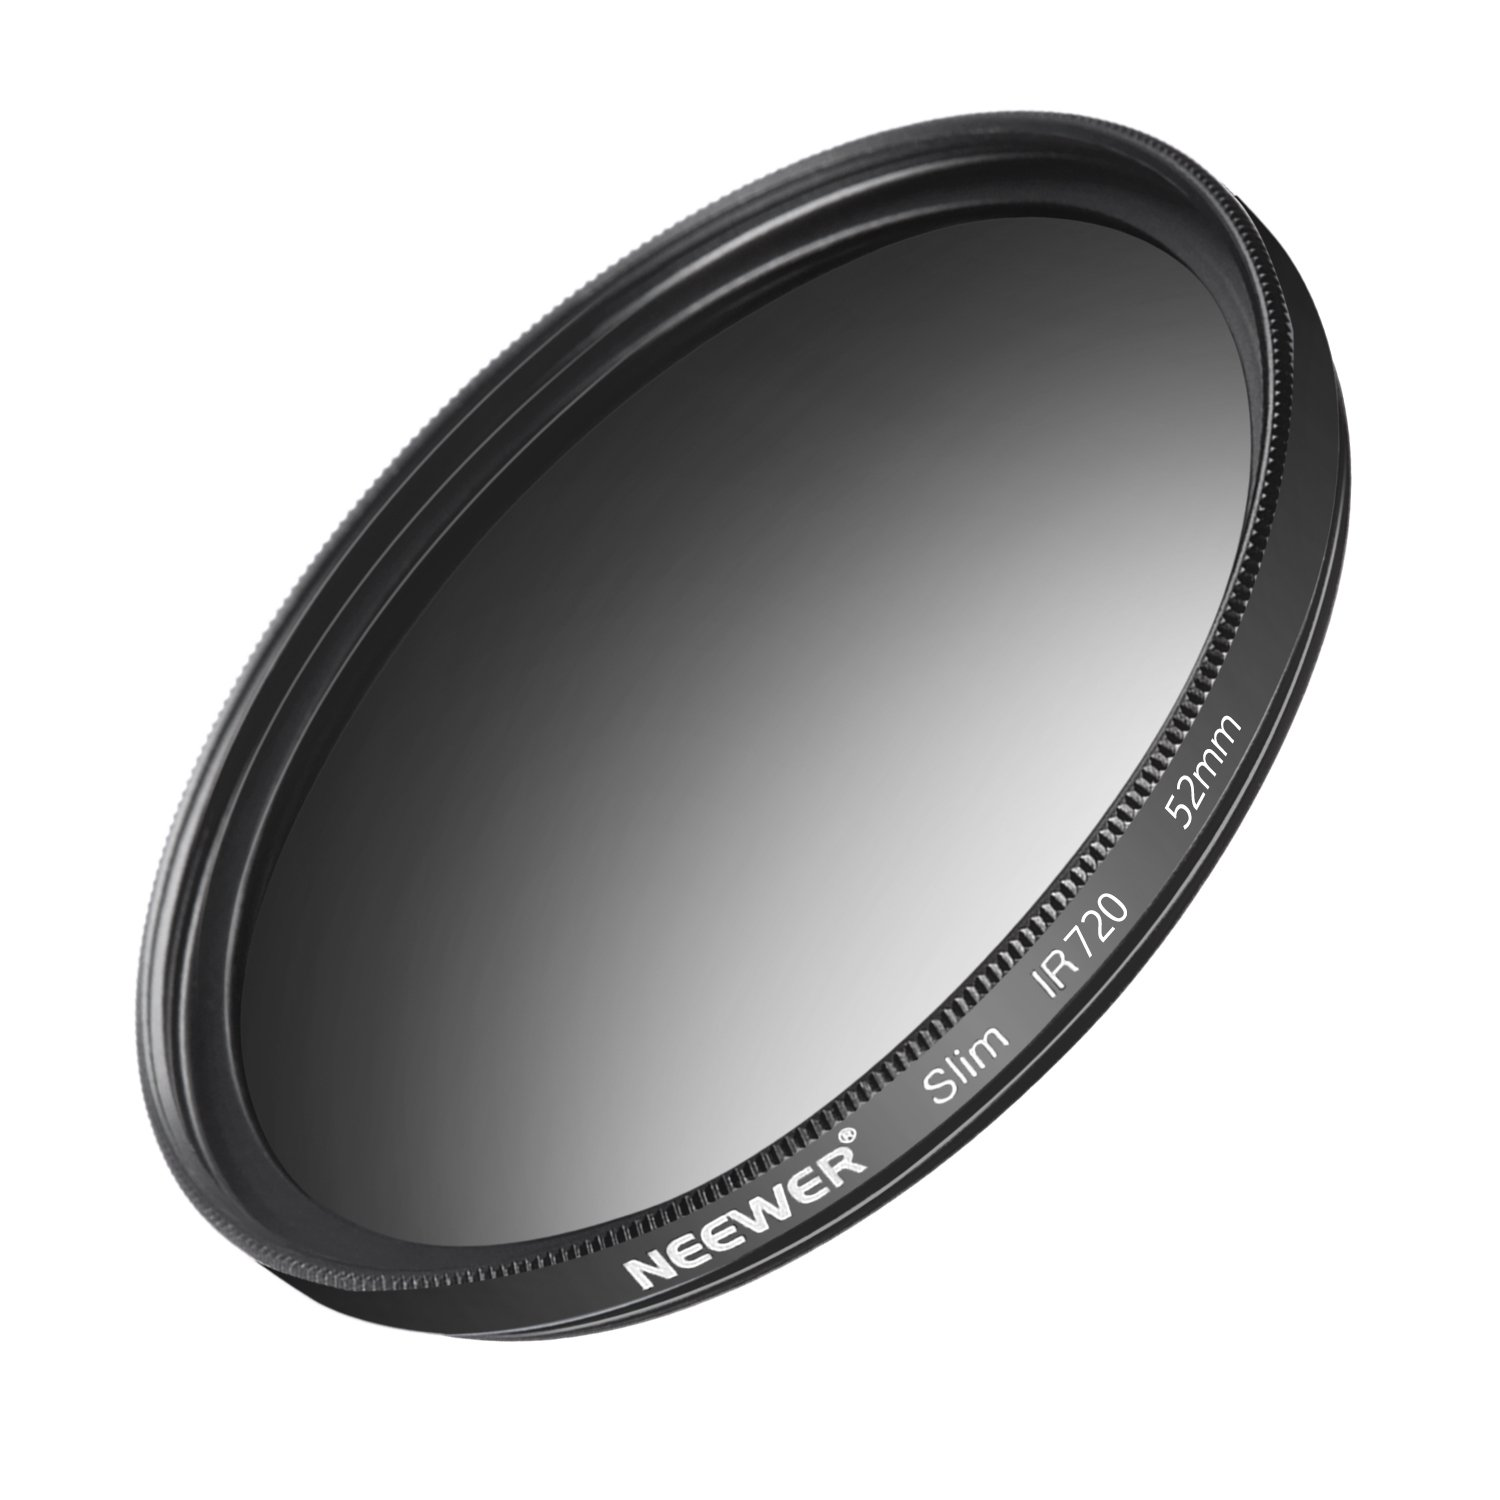 Neewer 52MM IR720 Infrared X-Ray Filter for Nikon D3300 D3200 D3100 D3000 D5300 D5200 D5100 D5000 D7000 D7100 DSLR Camera, Made of HD Optical Glass and Aluminum Alloy Frame 10090620